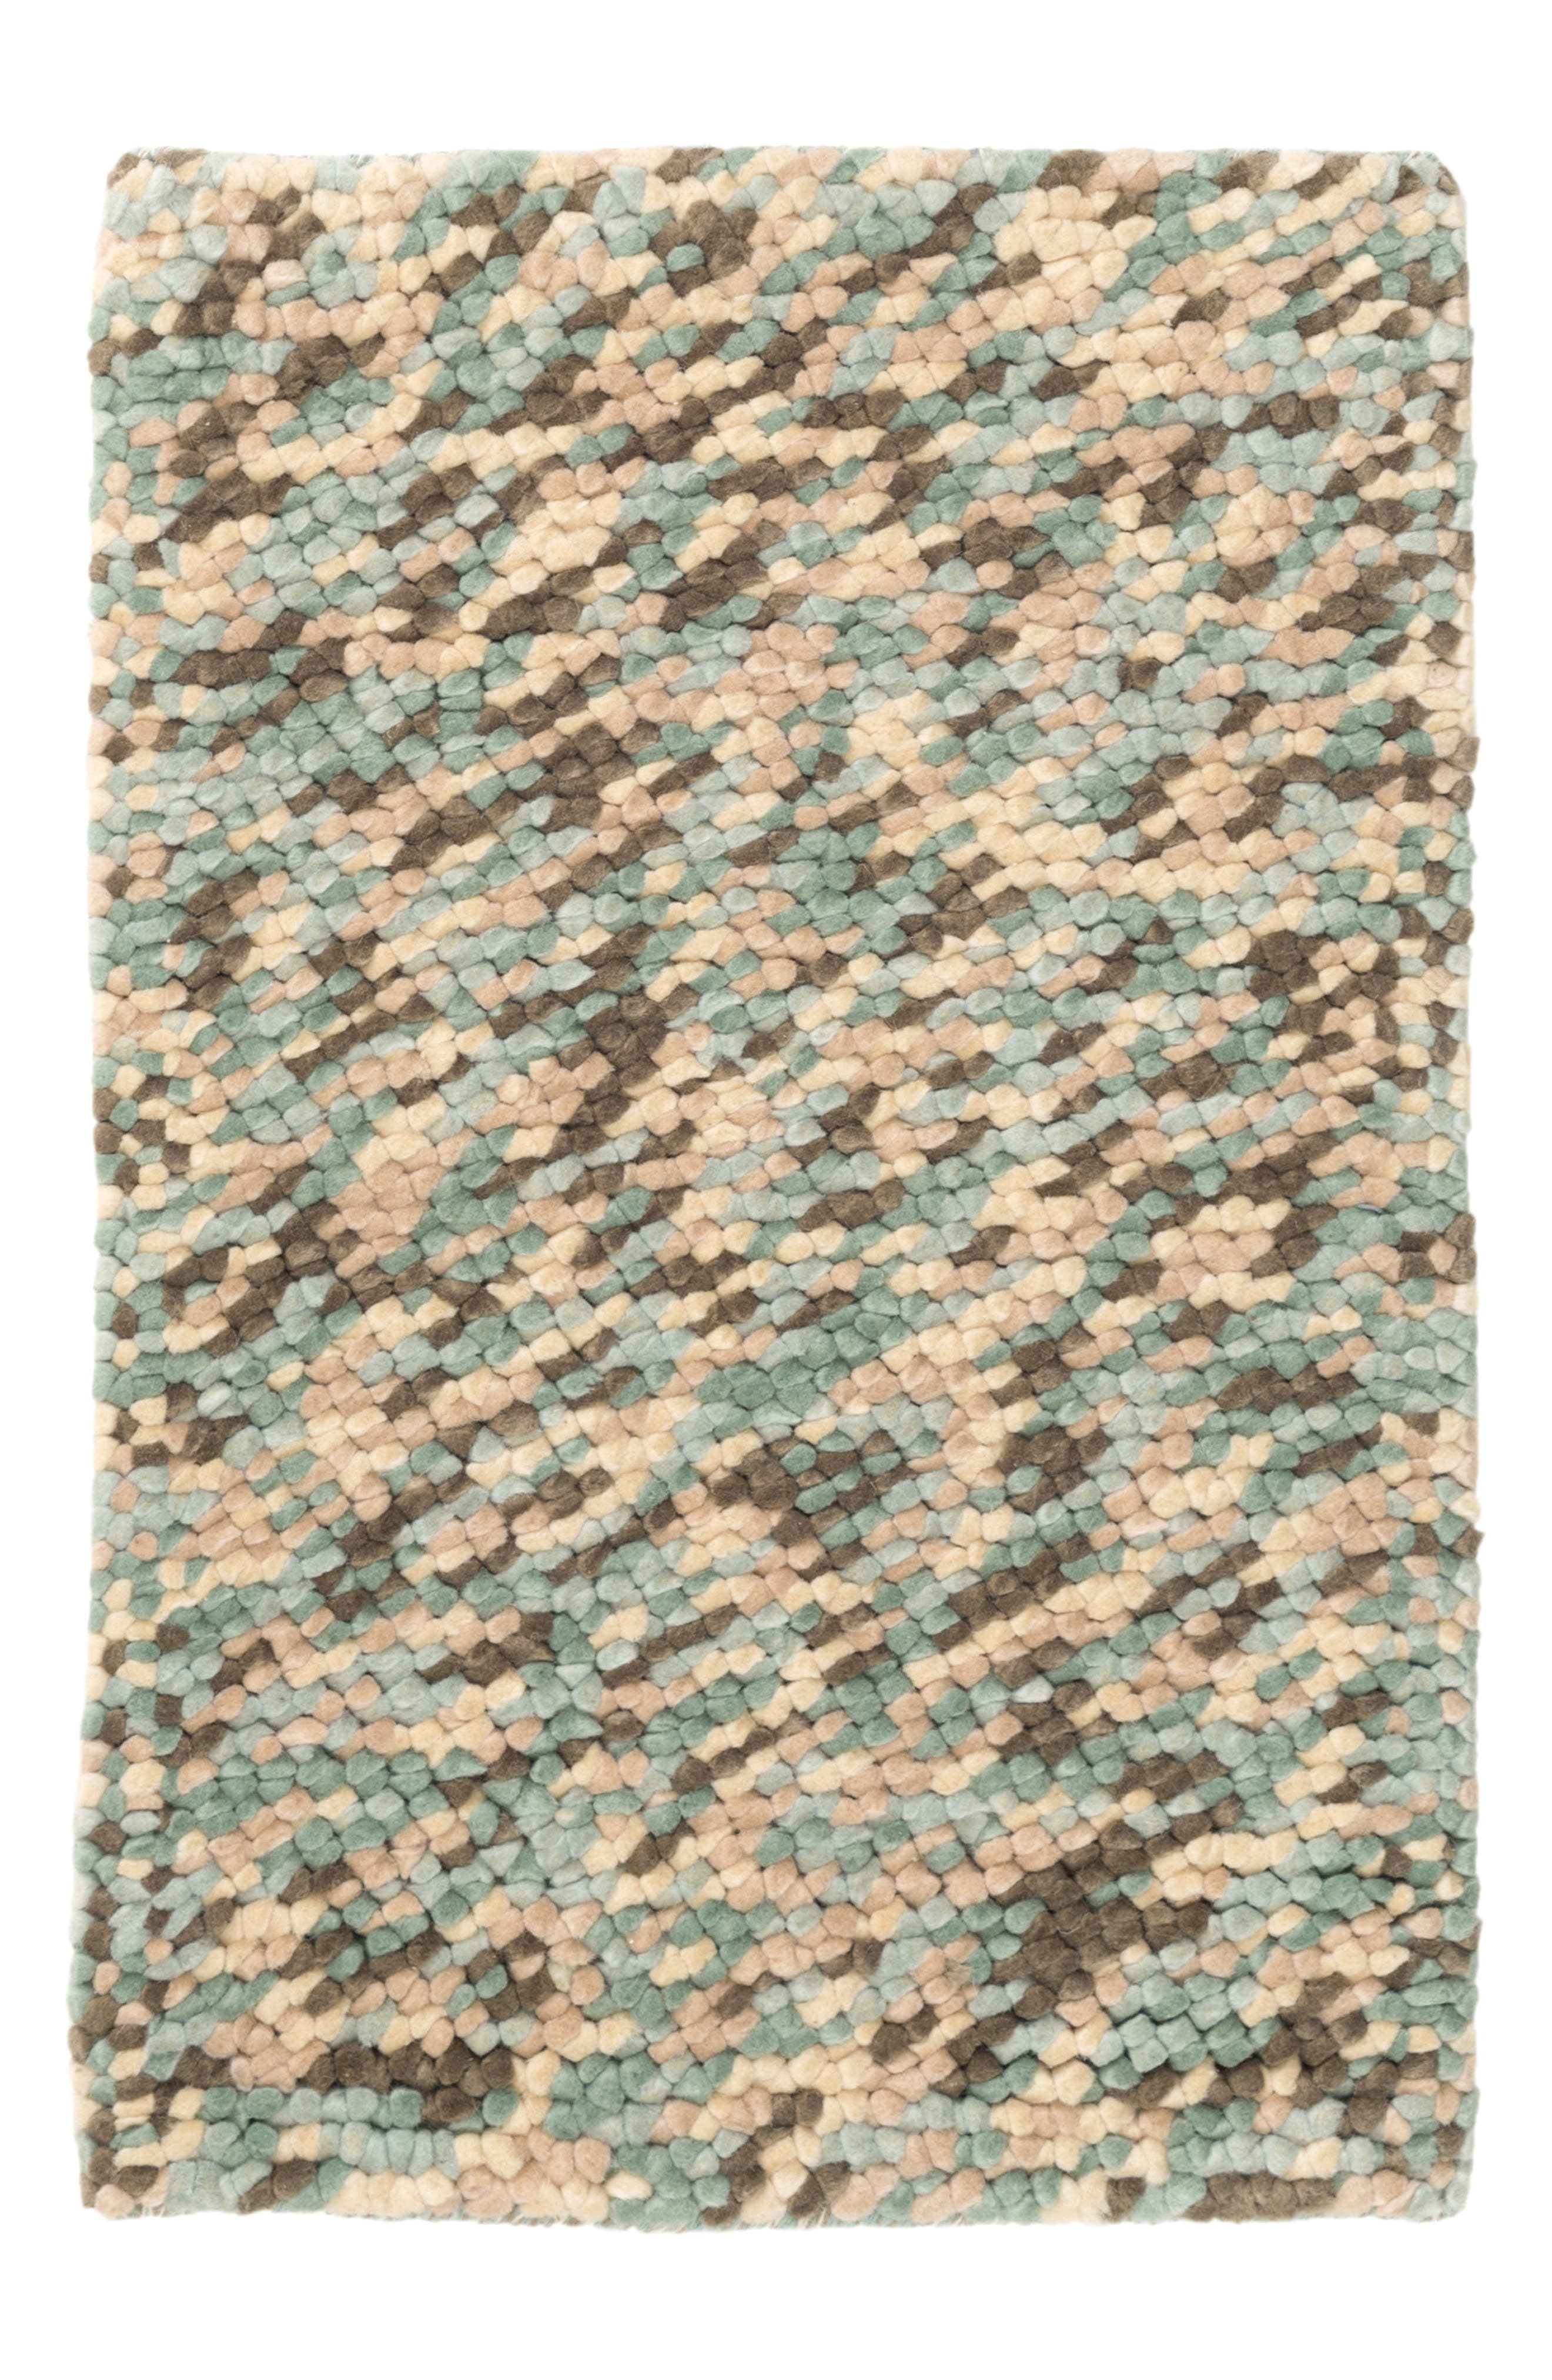 Alternate Image 1 Selected - Dash & Albert Seurat Seaglass Wool Rug